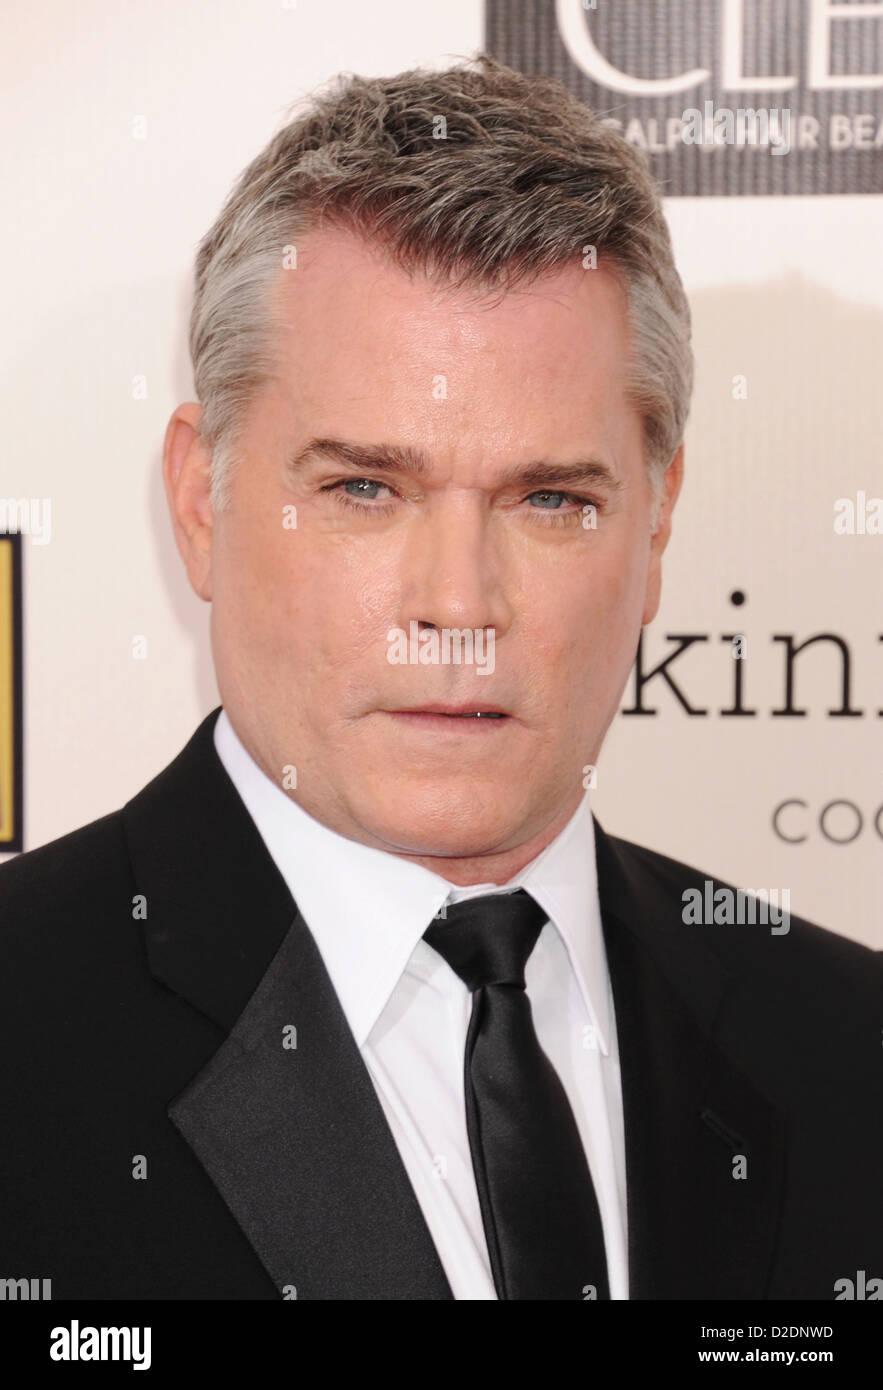 Ray Liotta Stock Photos Ray Liotta Stock Images Alamy -> Sala De Tv Jeff